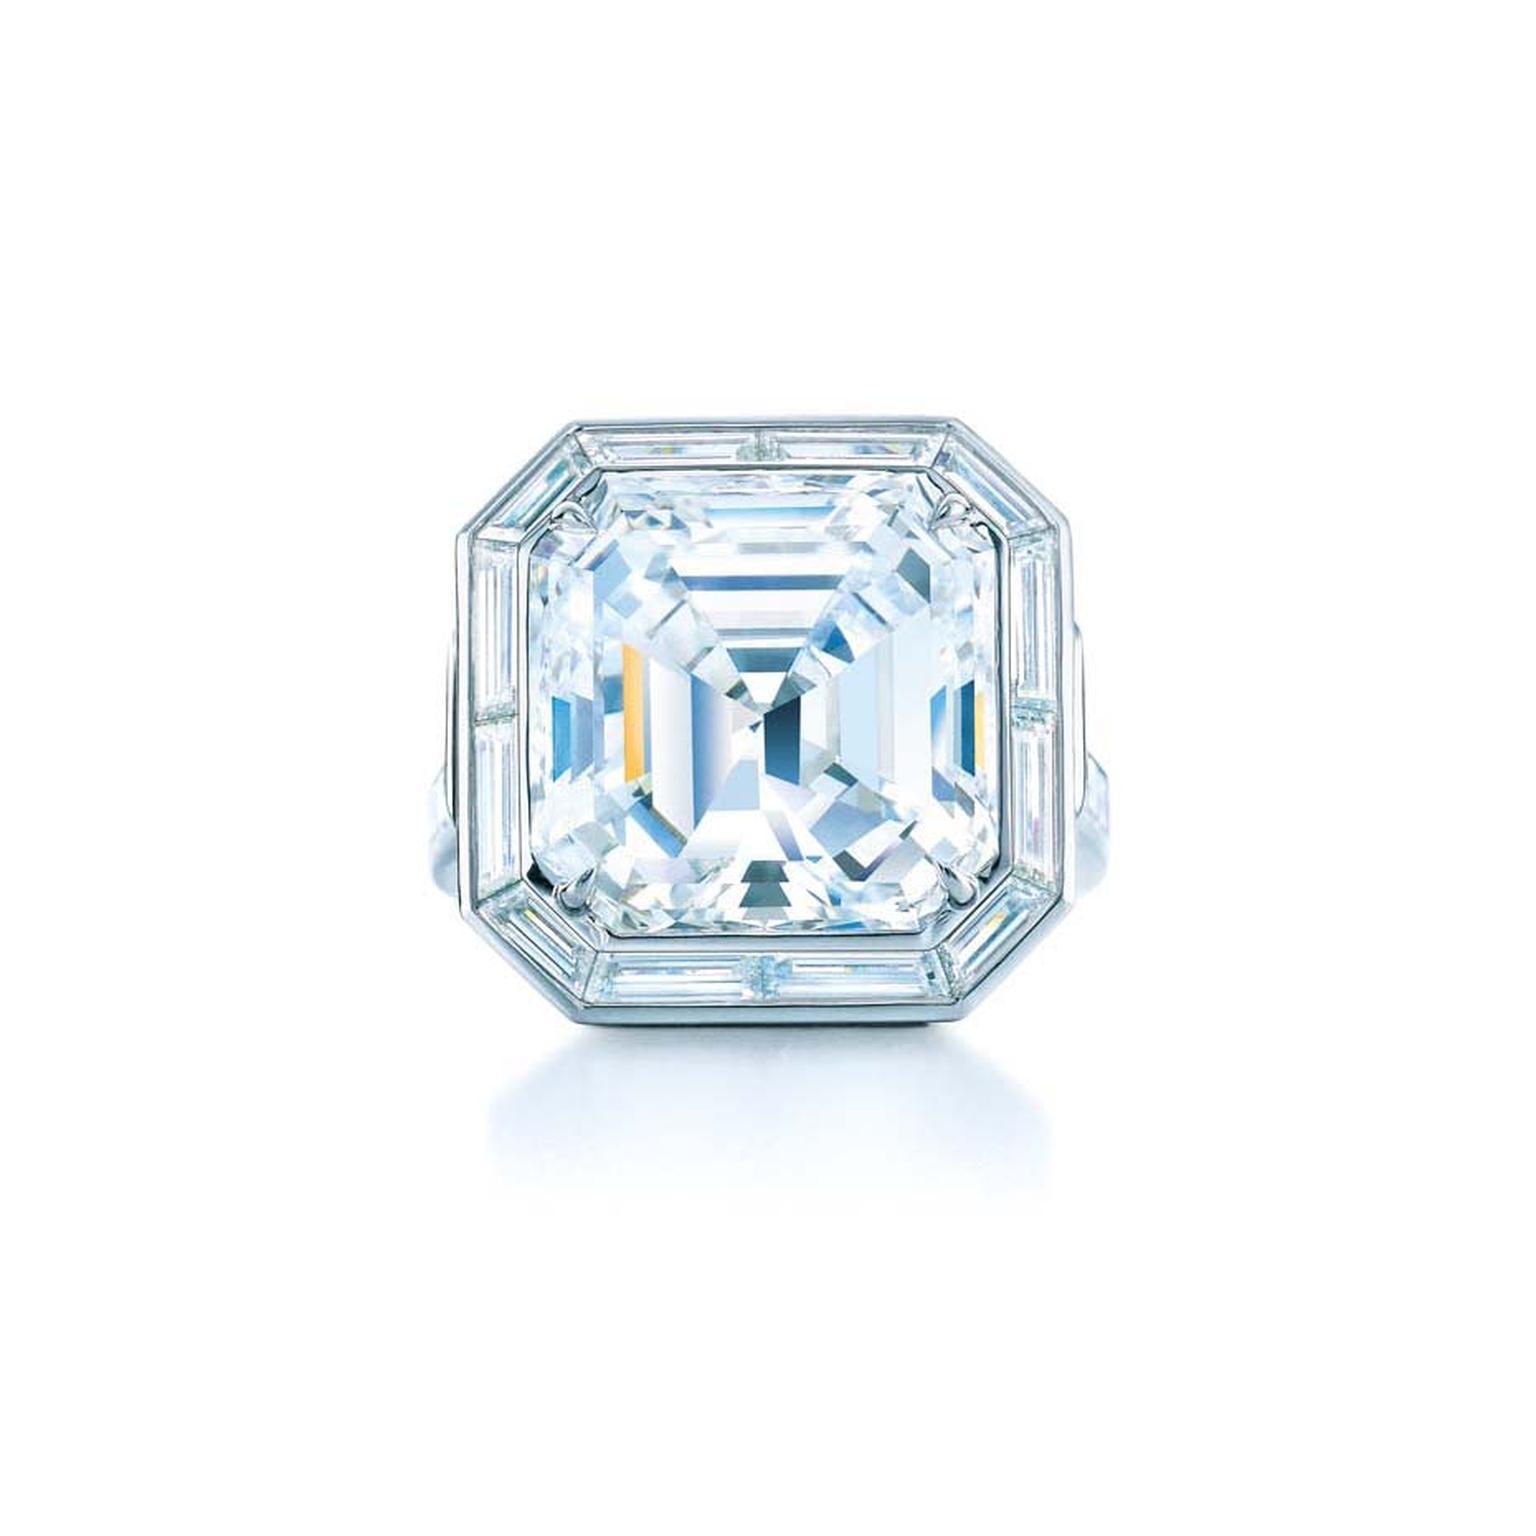 Tiffany & Co. emerald-cut diamond engagement ring from the 2014 Blue Book collection.